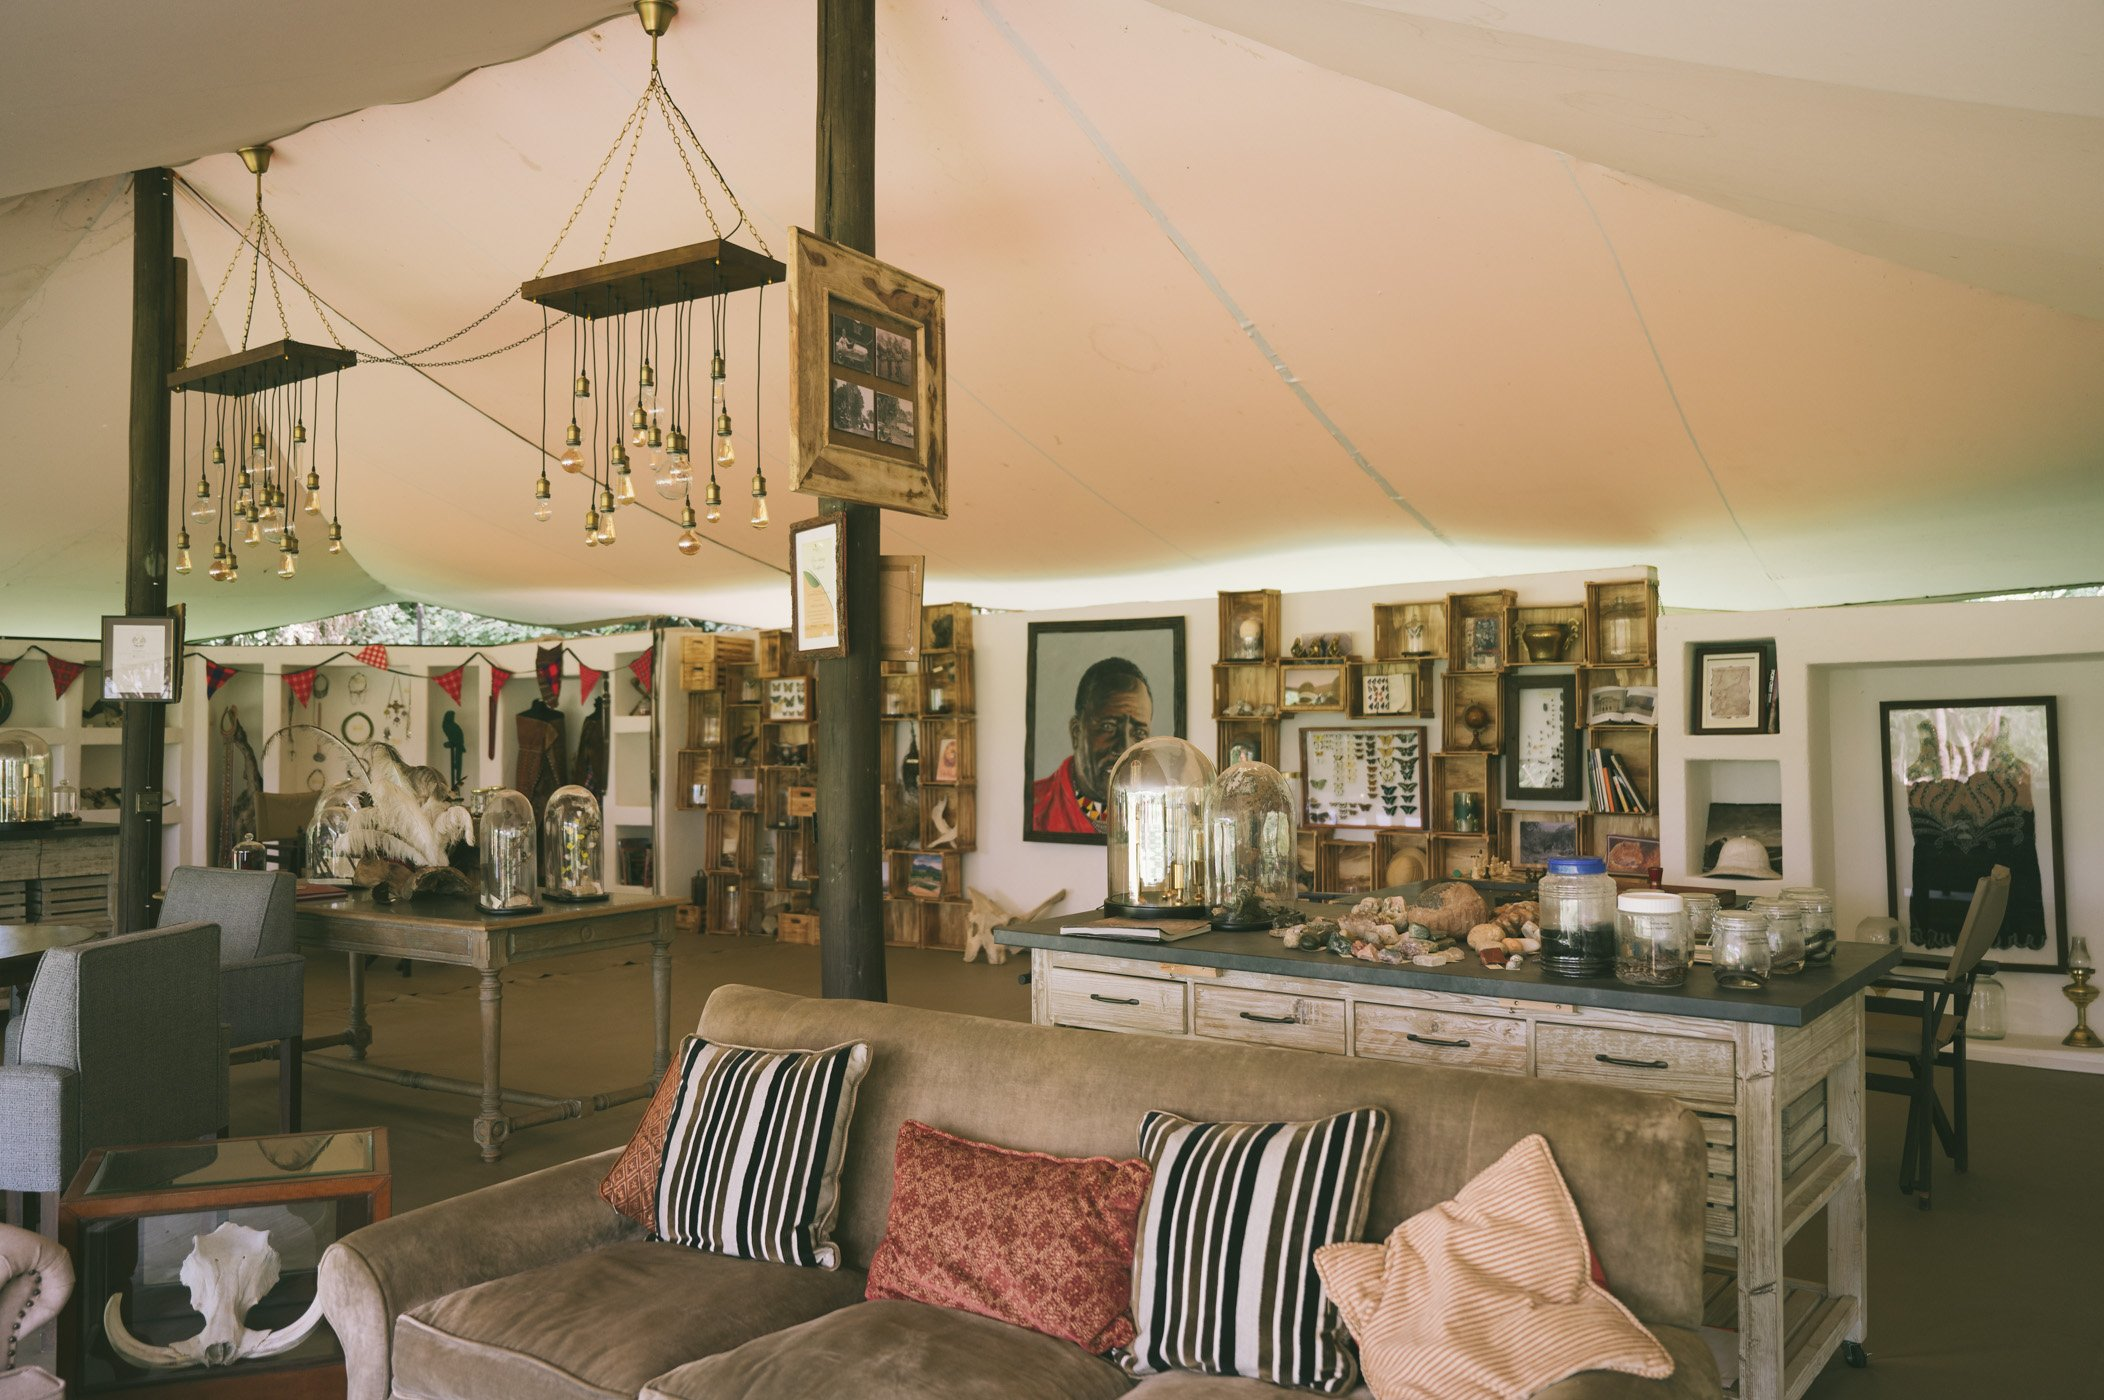 The new Explorer's tent at Cottar's 1920s camp in Kenya